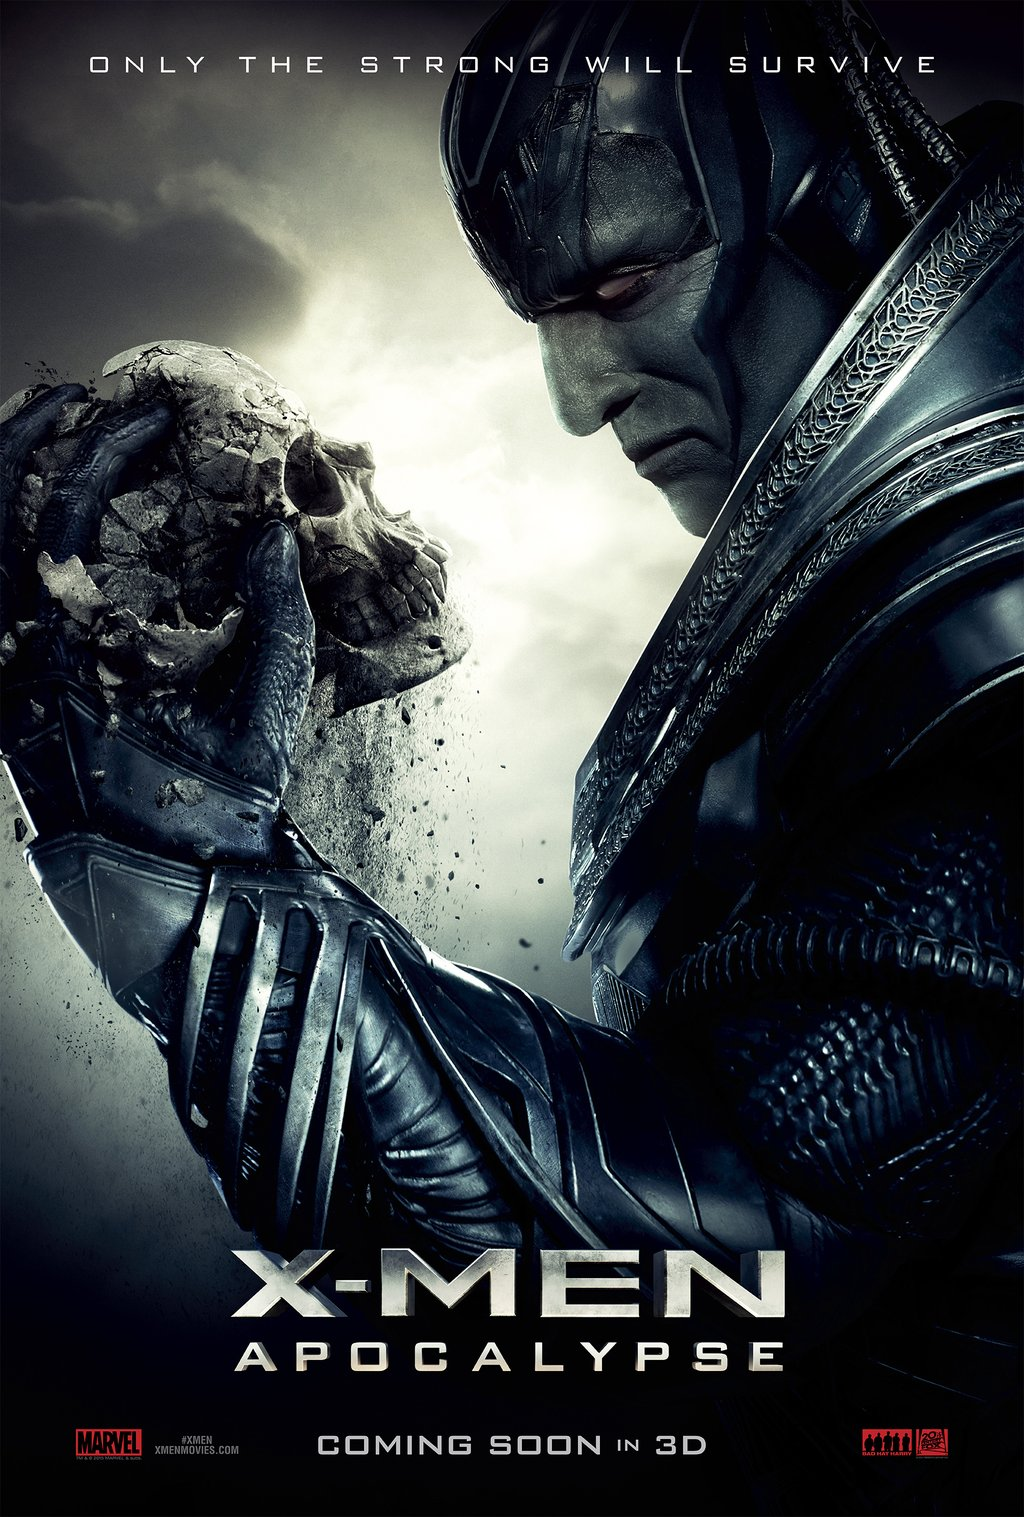 One last final X-Men Apocalypse trailer - meh